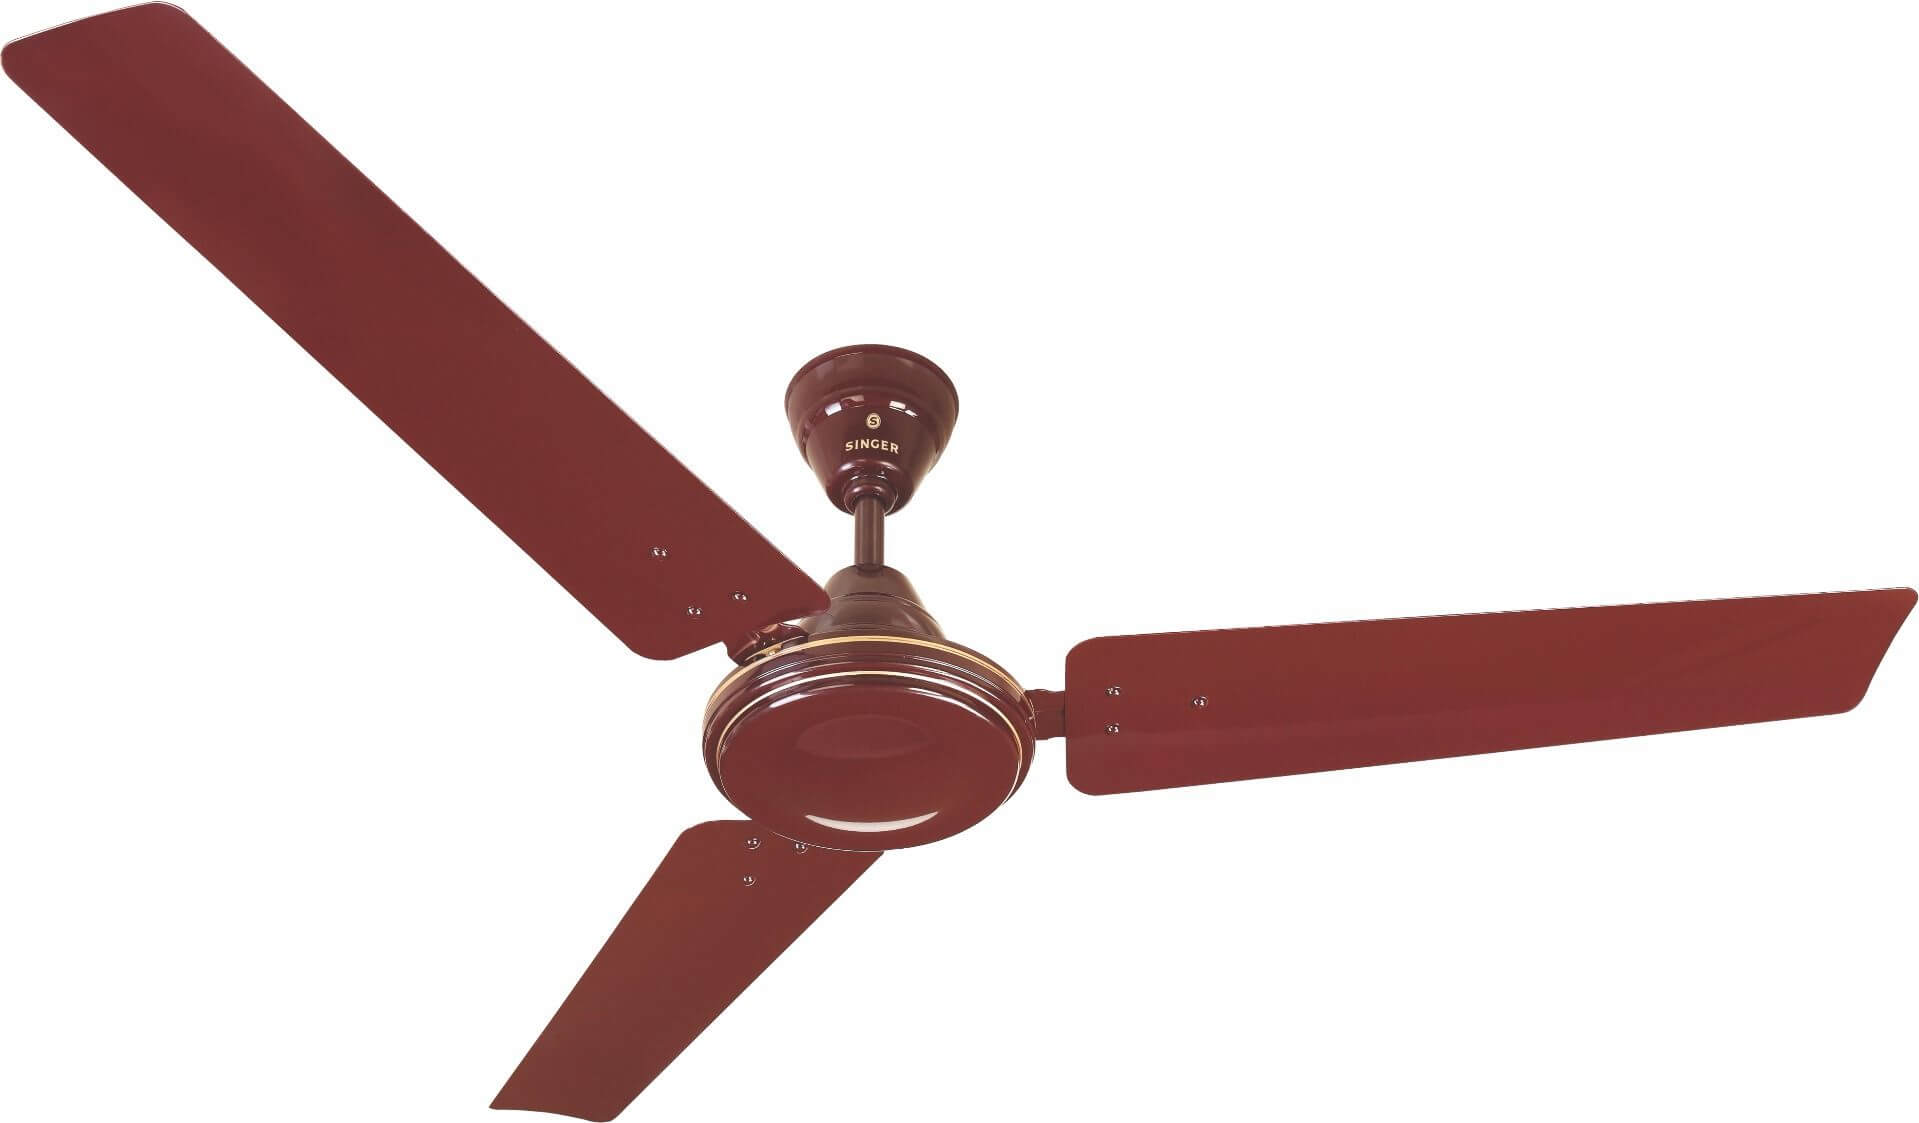 Singer Aerostar Supreme Ceiling Fan (Brown)